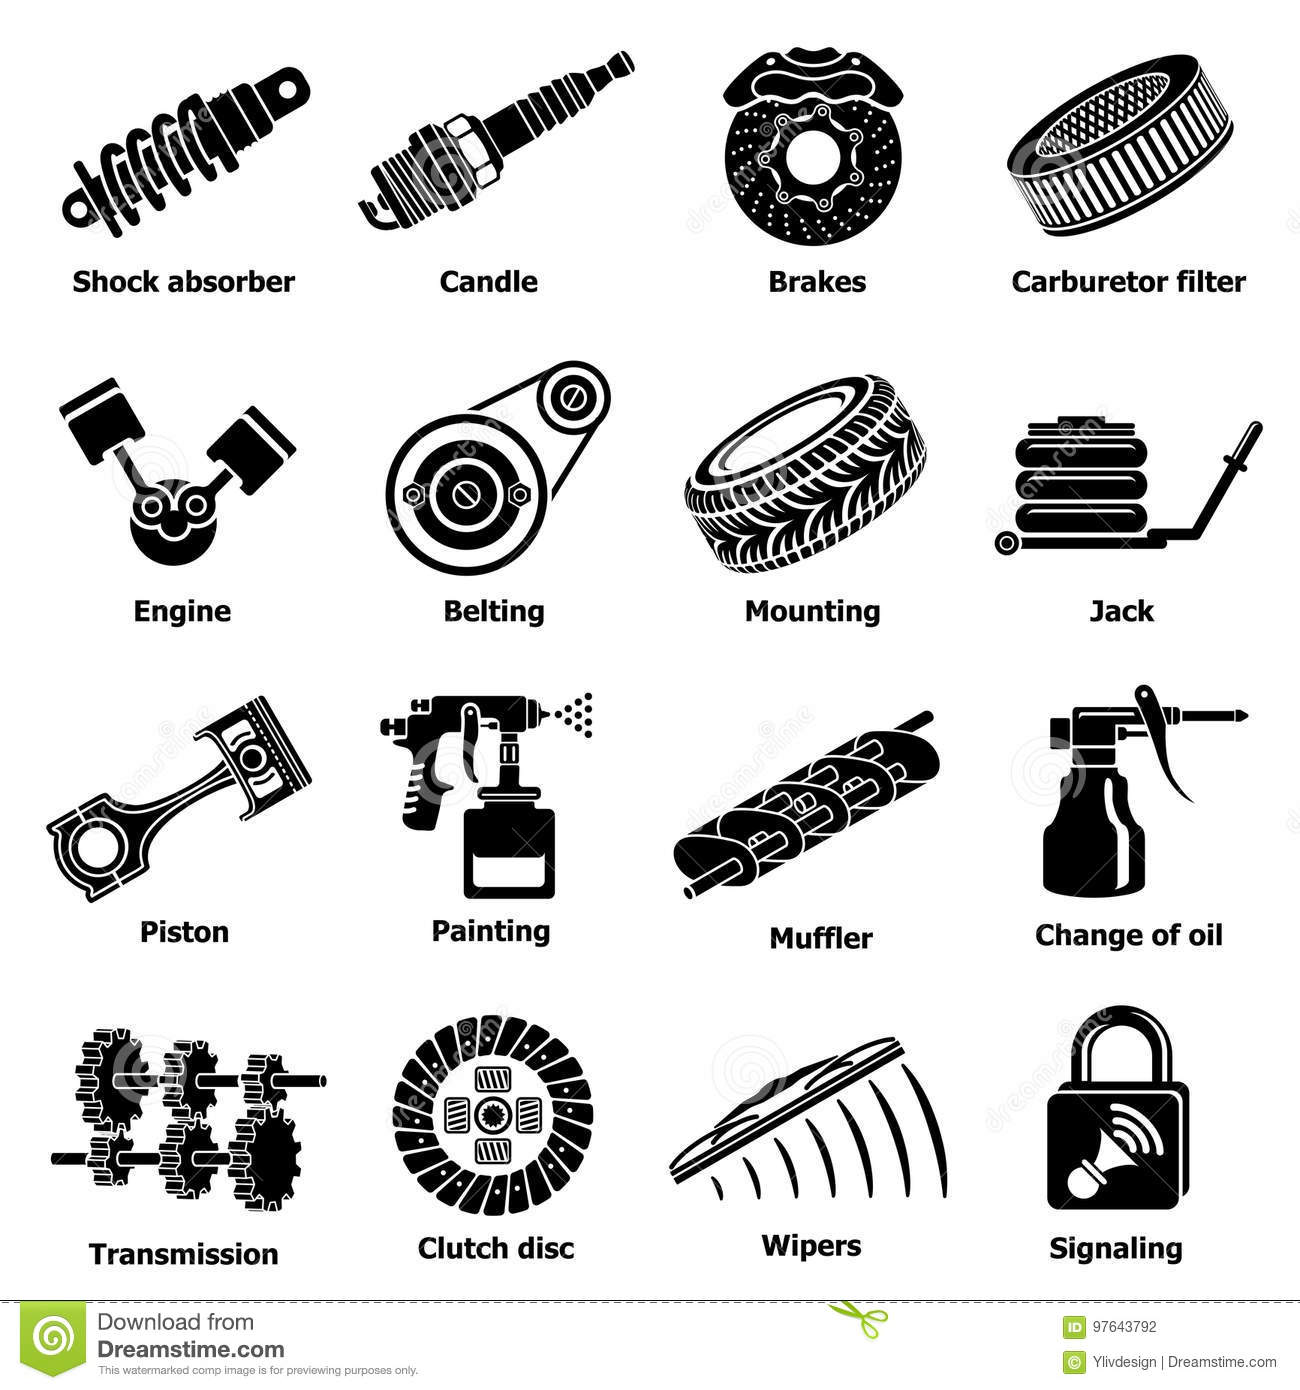 Belting cartoons illustrations vector stock images 24 for Simple car parts